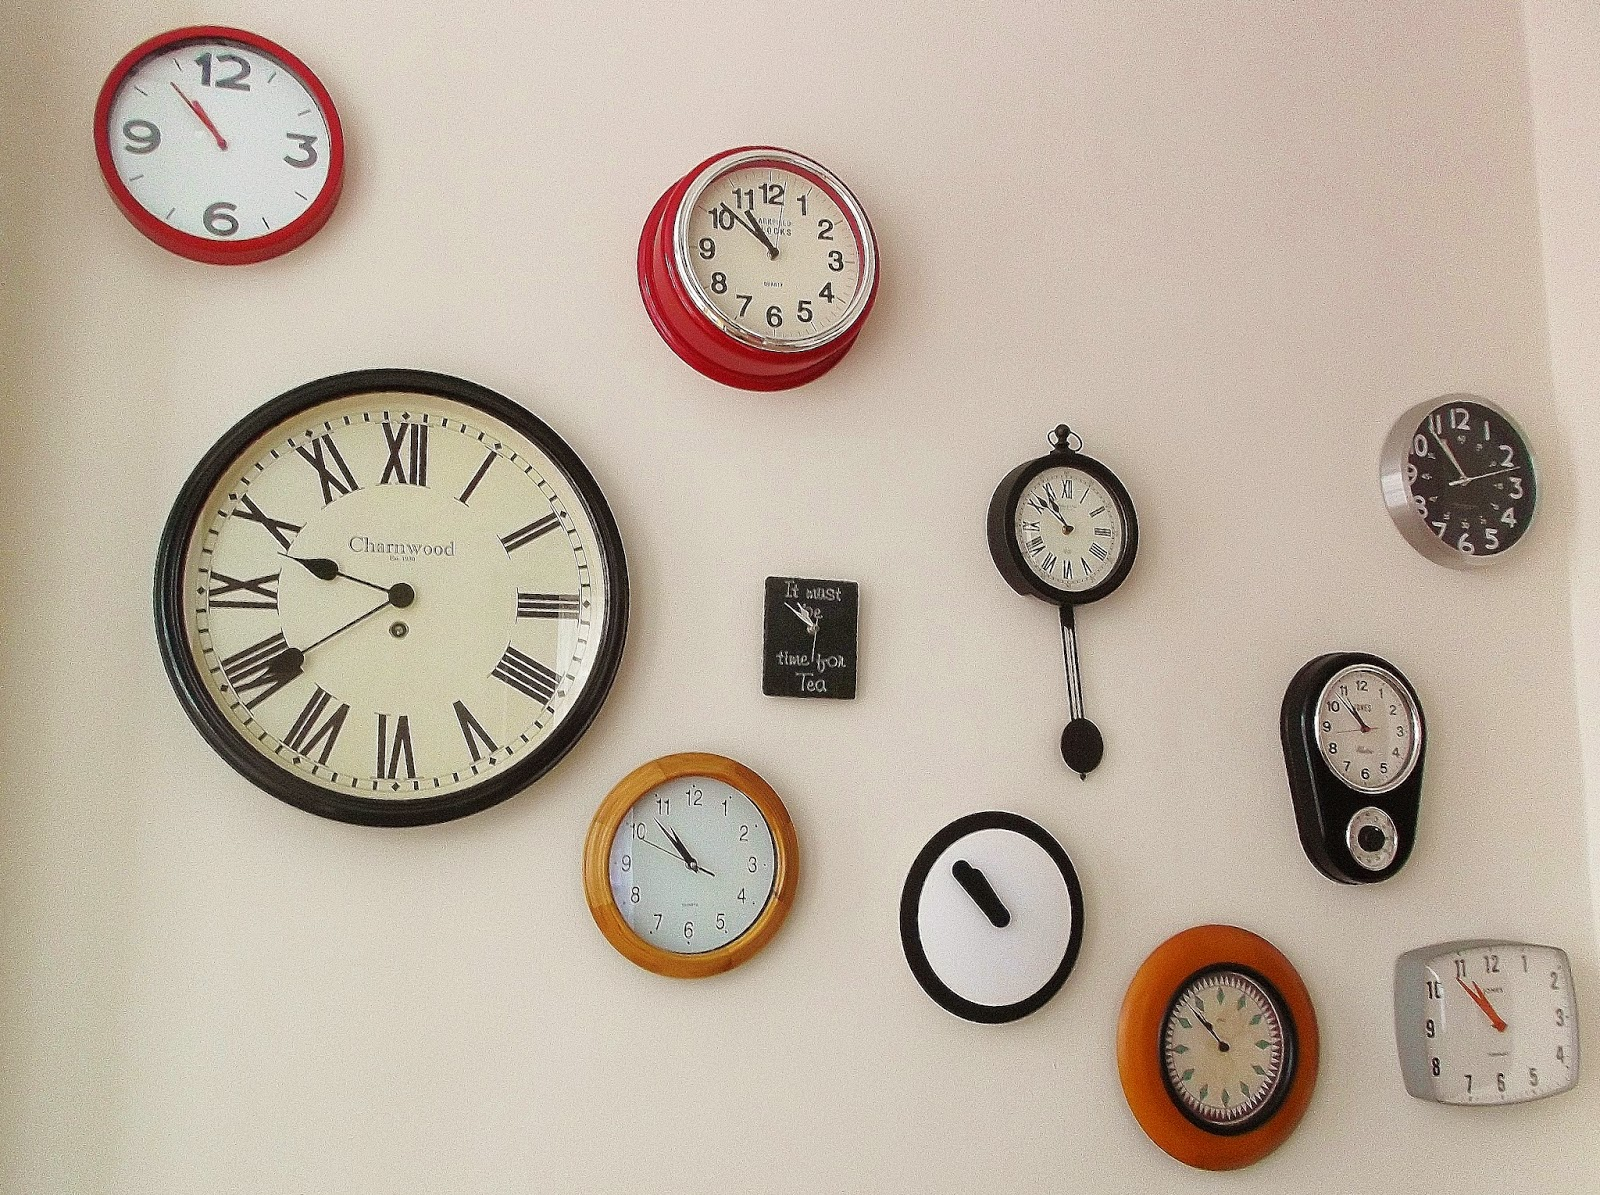 Interiors clock wall call me amy from left to right argos wilko gifted sainsburys lincoln christmas market red5 asda charity shop tesco asda tesco our clock wall amipublicfo Image collections